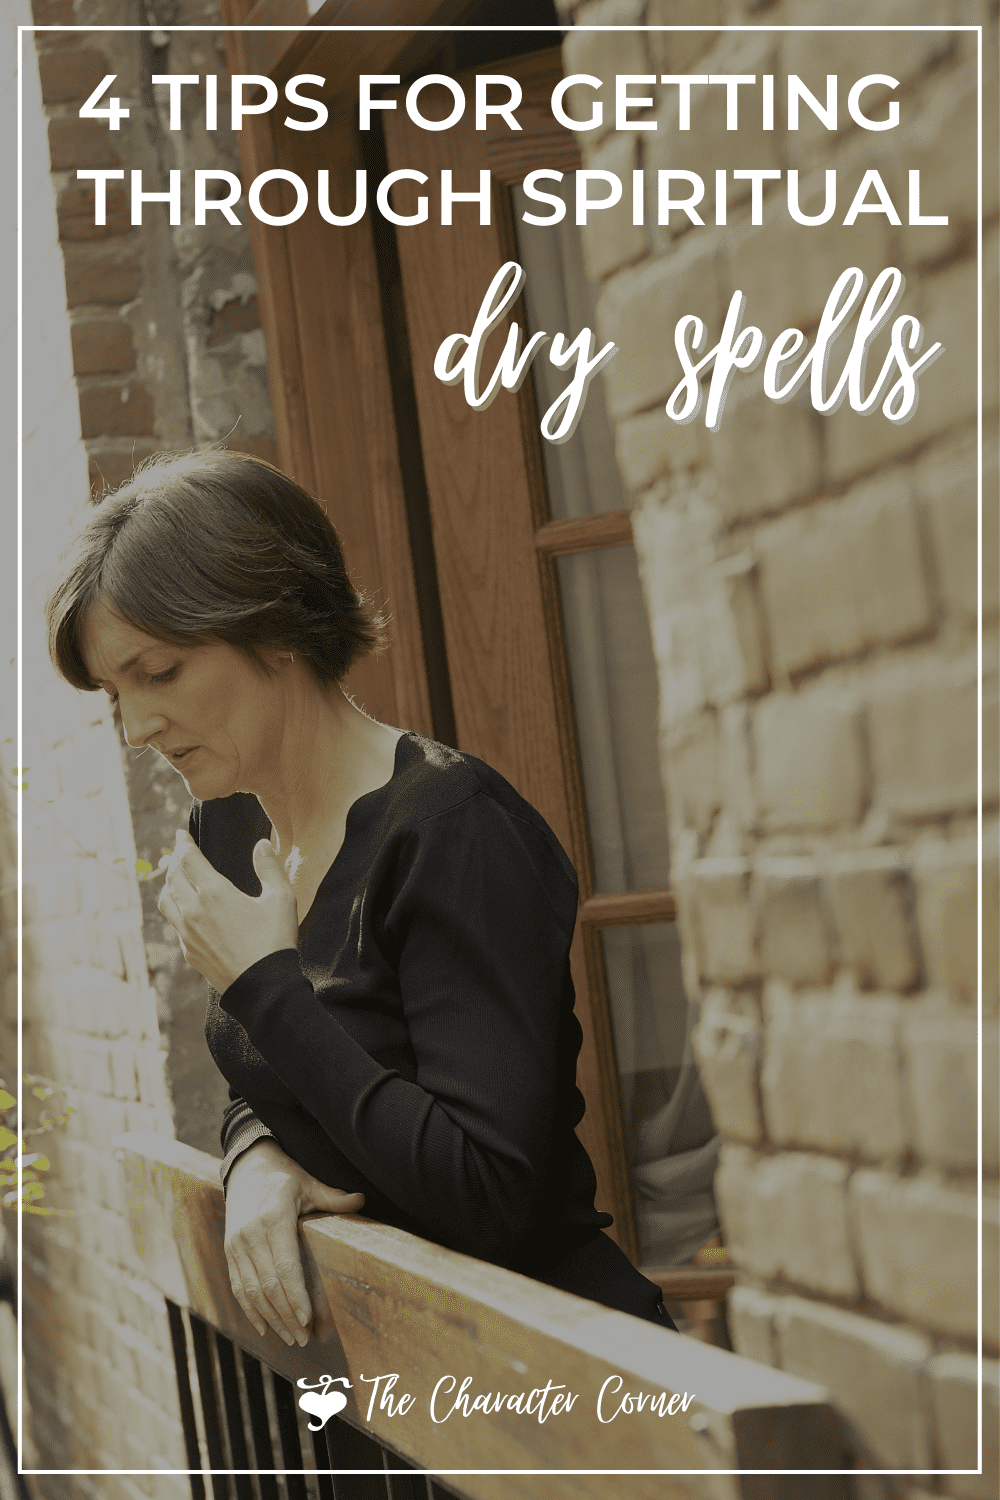 Woman looking off Text on image reads 4 Tips for Getting Through Spiritual Dry Spells